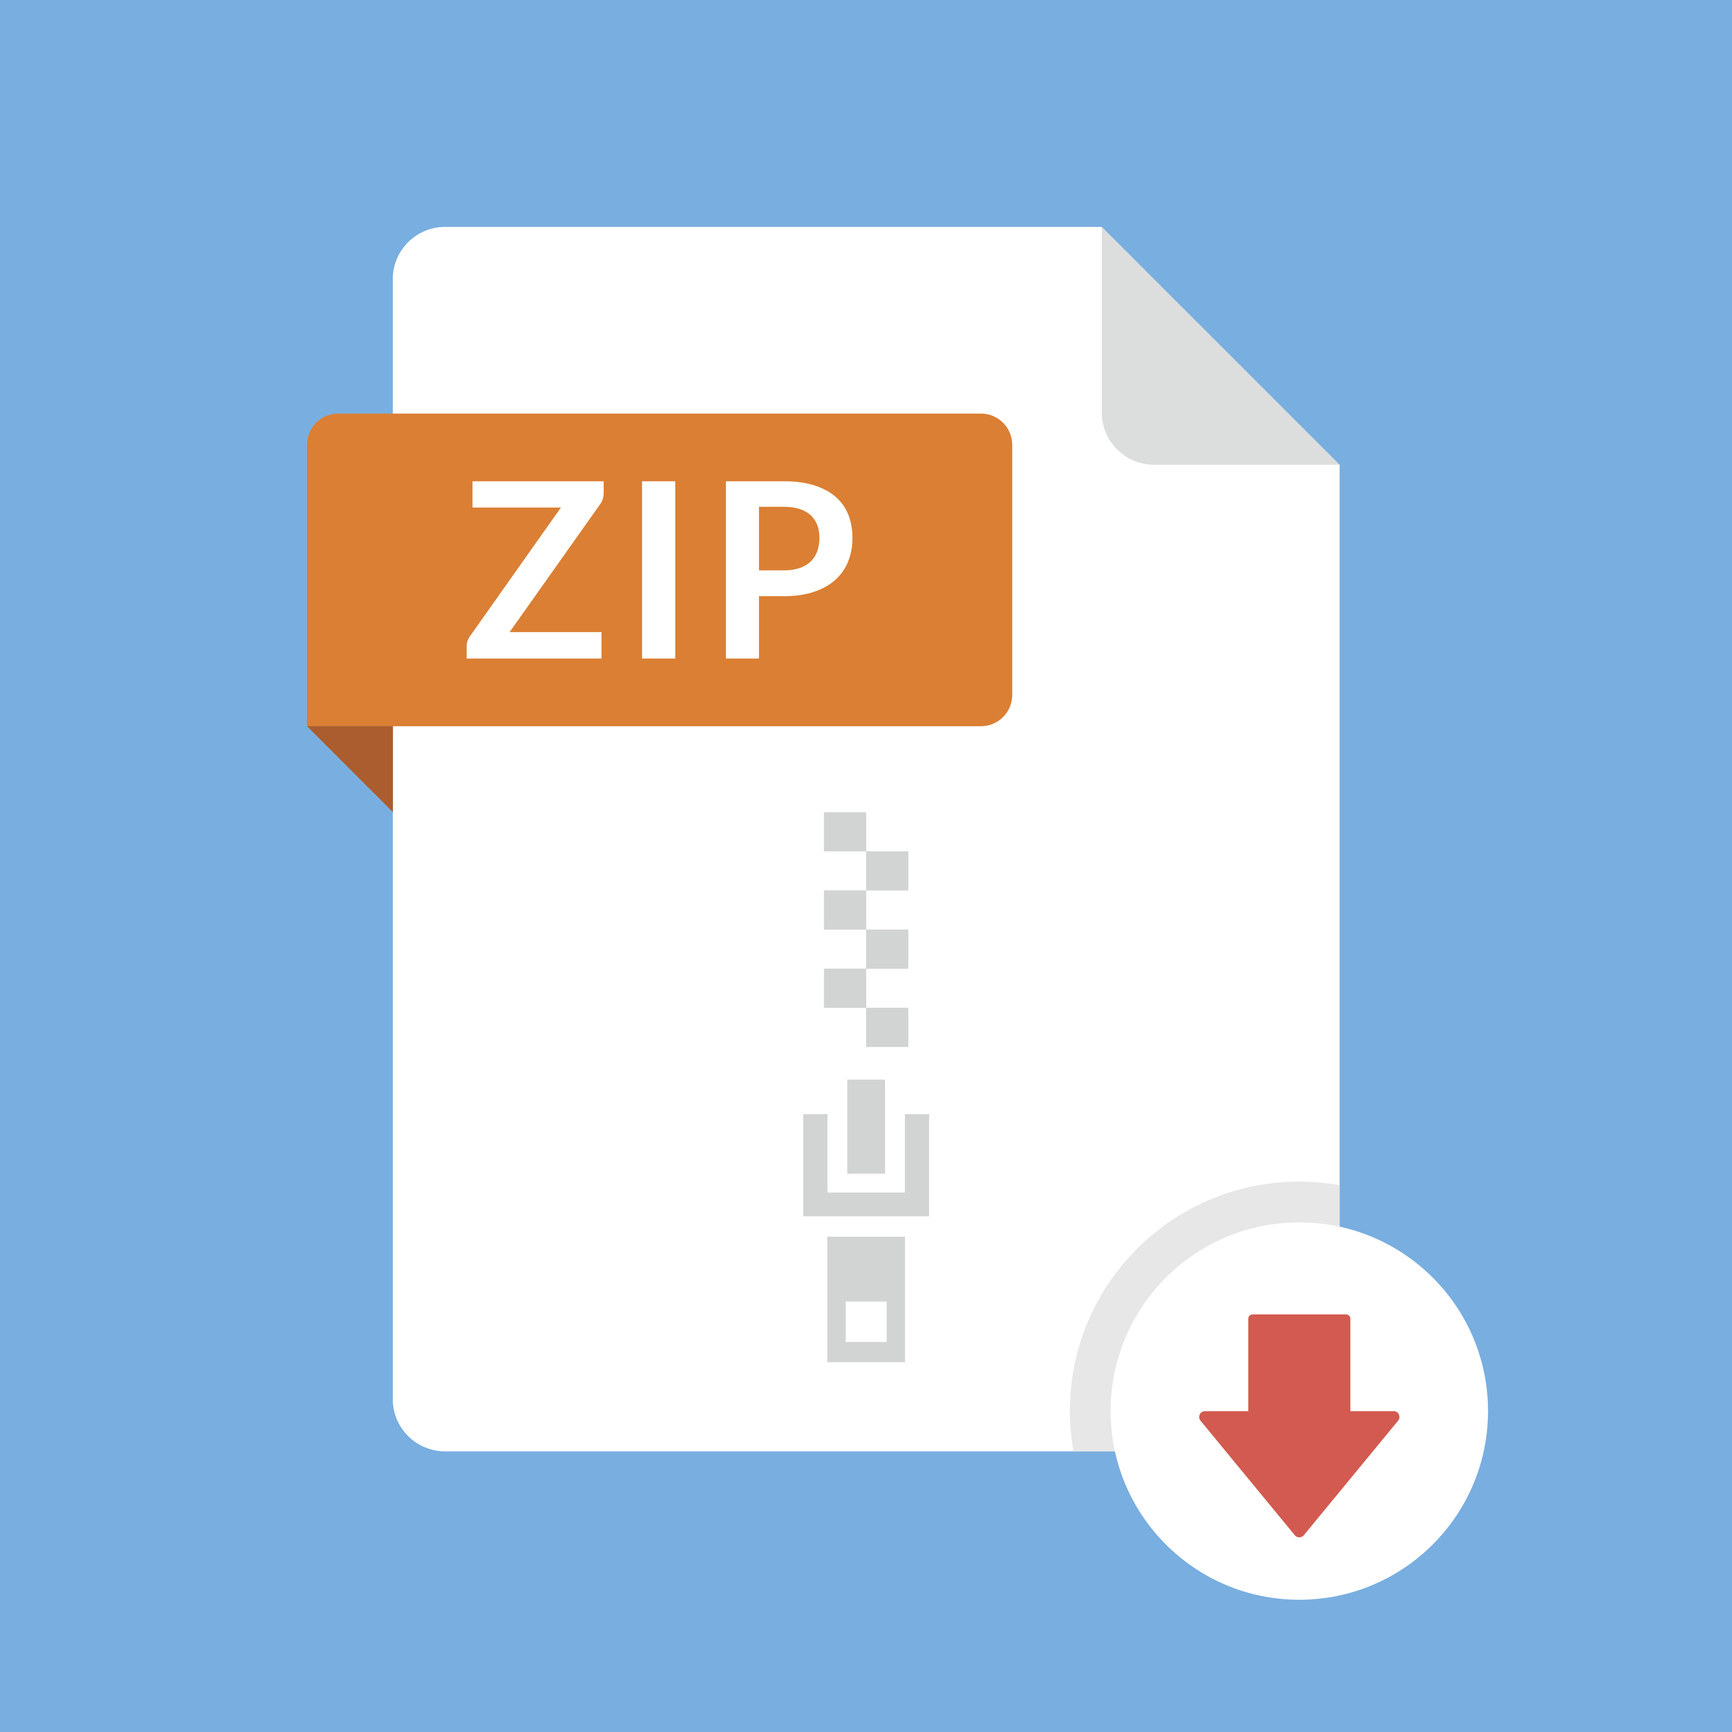 A stock image of a zip file being downloaded